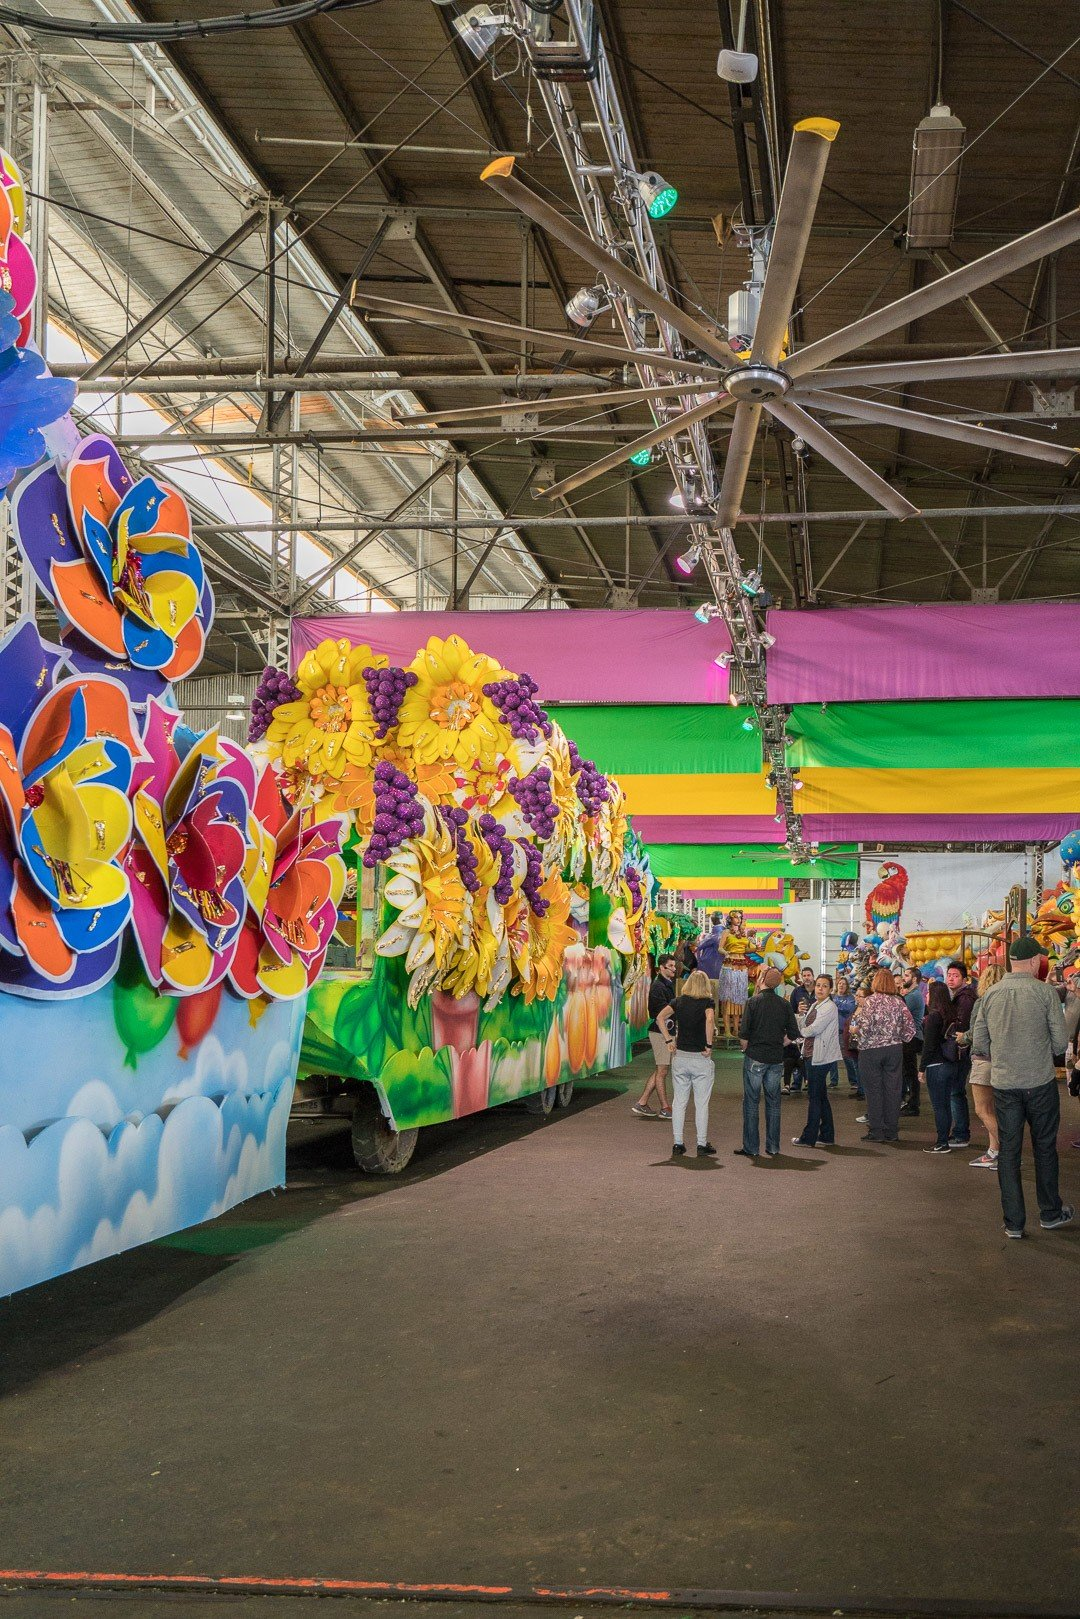 A tour of the Mardi Gras float making facility at Mardi Gras World, one of the popular things to do in New Orleans.